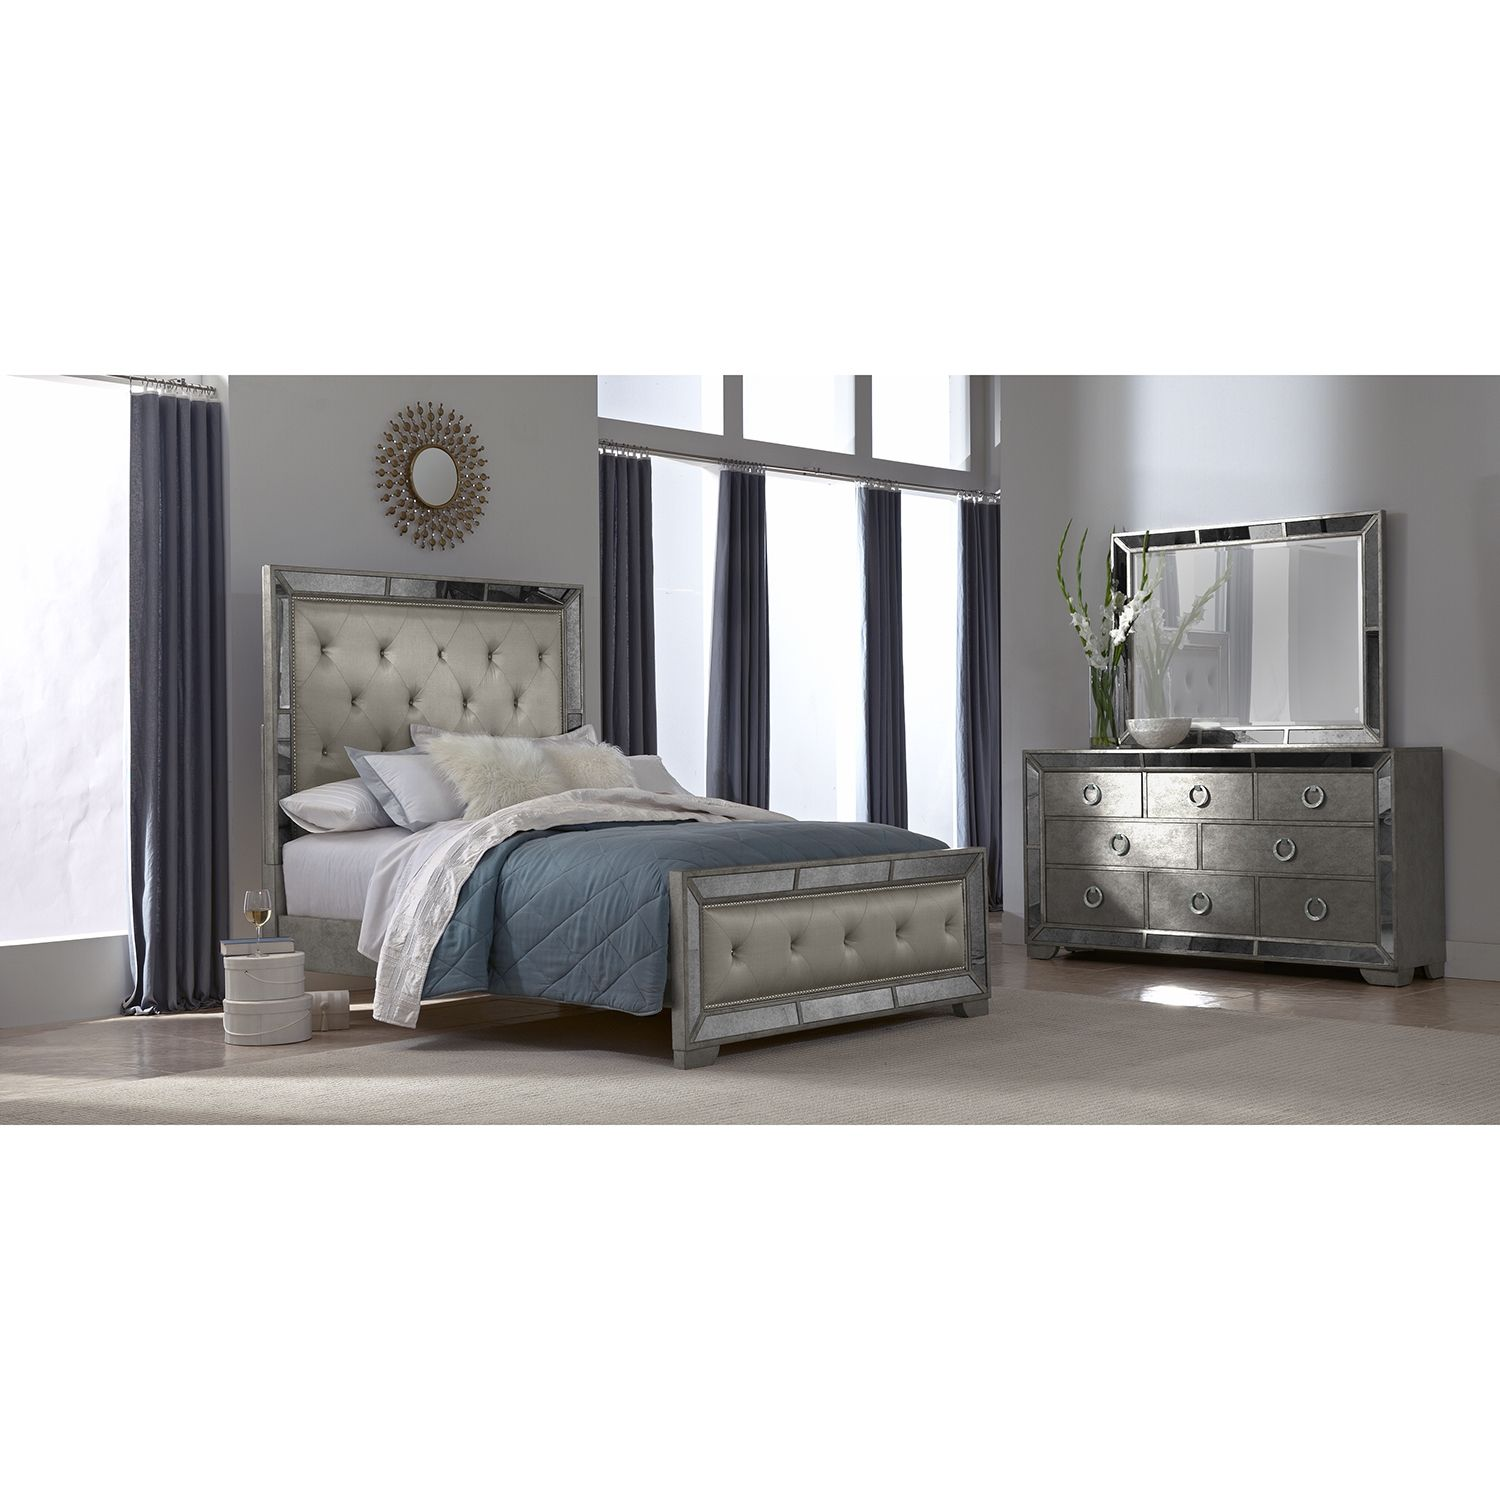 american furniture bedroom sets home design ideas | 1yellowpage